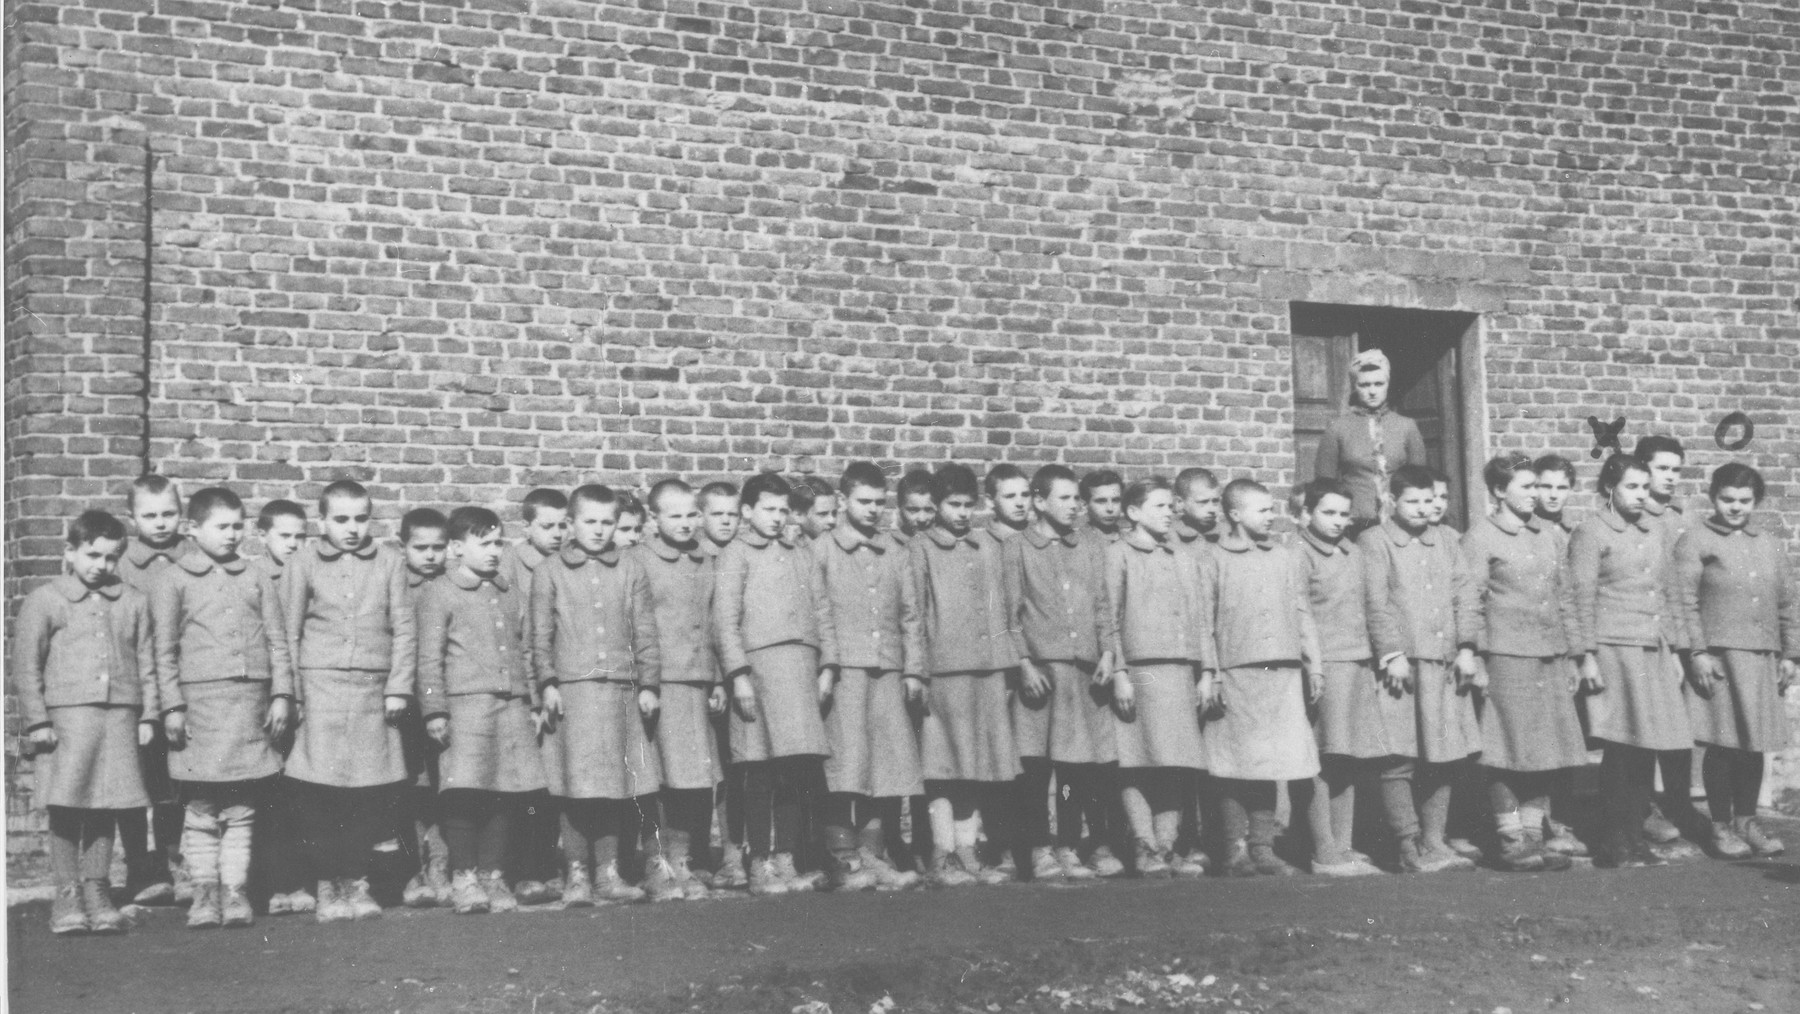 Girls are assembled for roll call at the Jugendschutzlager Litzmannstadt, a concentration camp for Polish juveniles.  Behind them stands the camp commandant Eugenie Pohl.